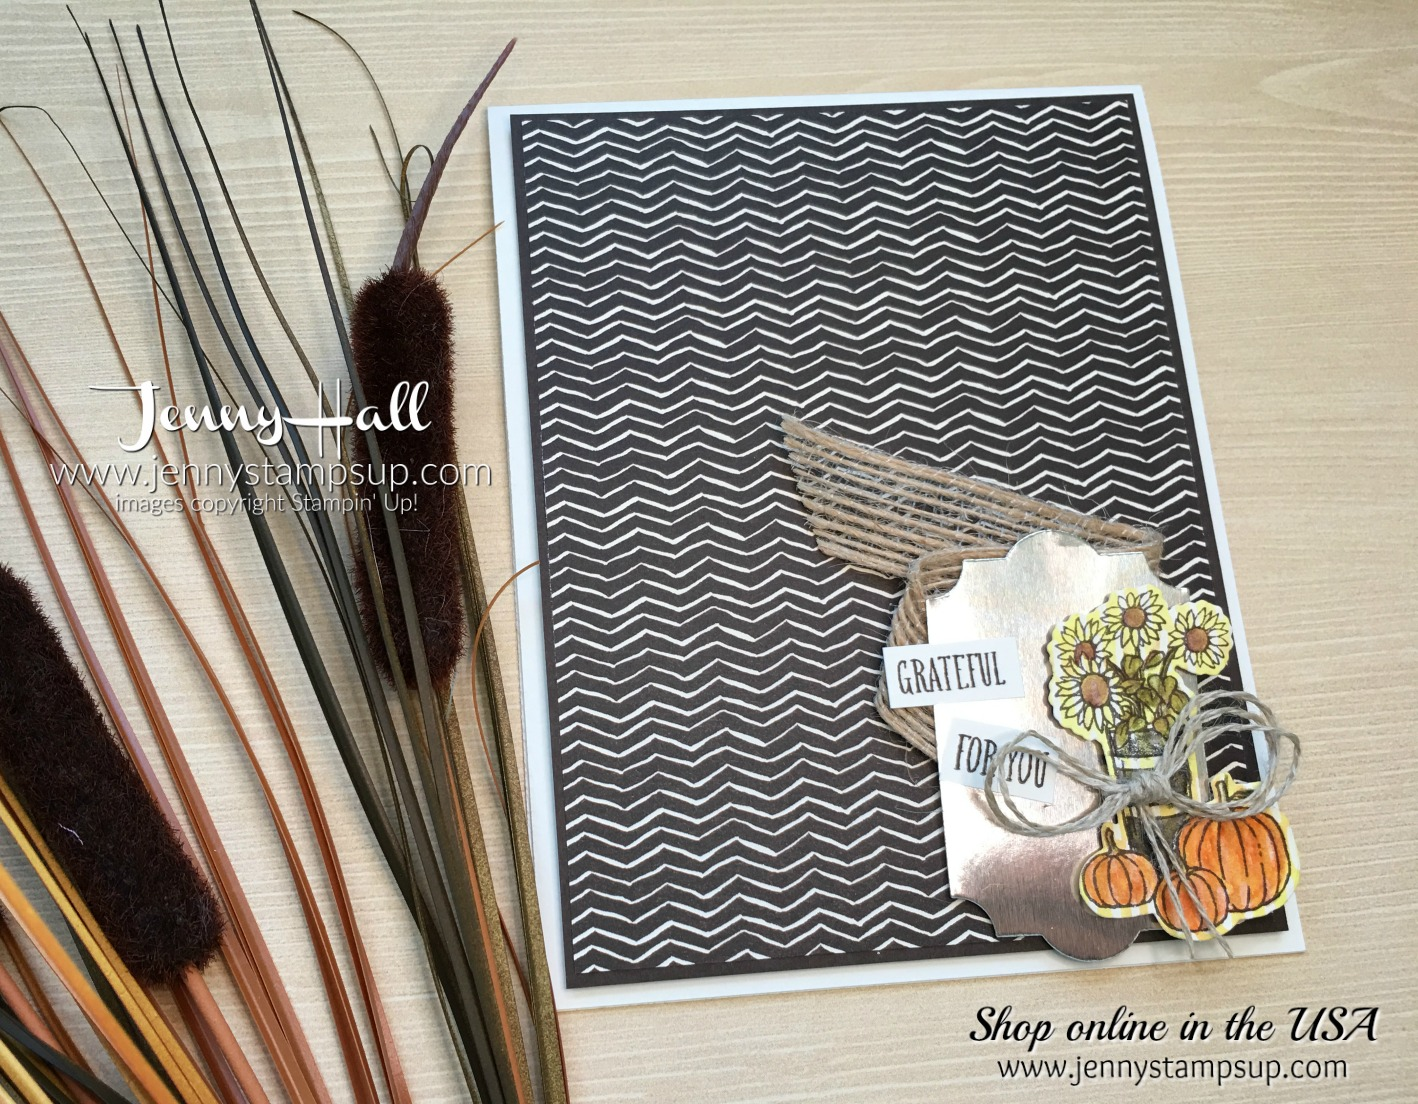 At Home With You card by Jenny Hall at www.jennyhalldesign.com for cardmaking, papercraft gift giving, scrapbooking, video tutorials and more!